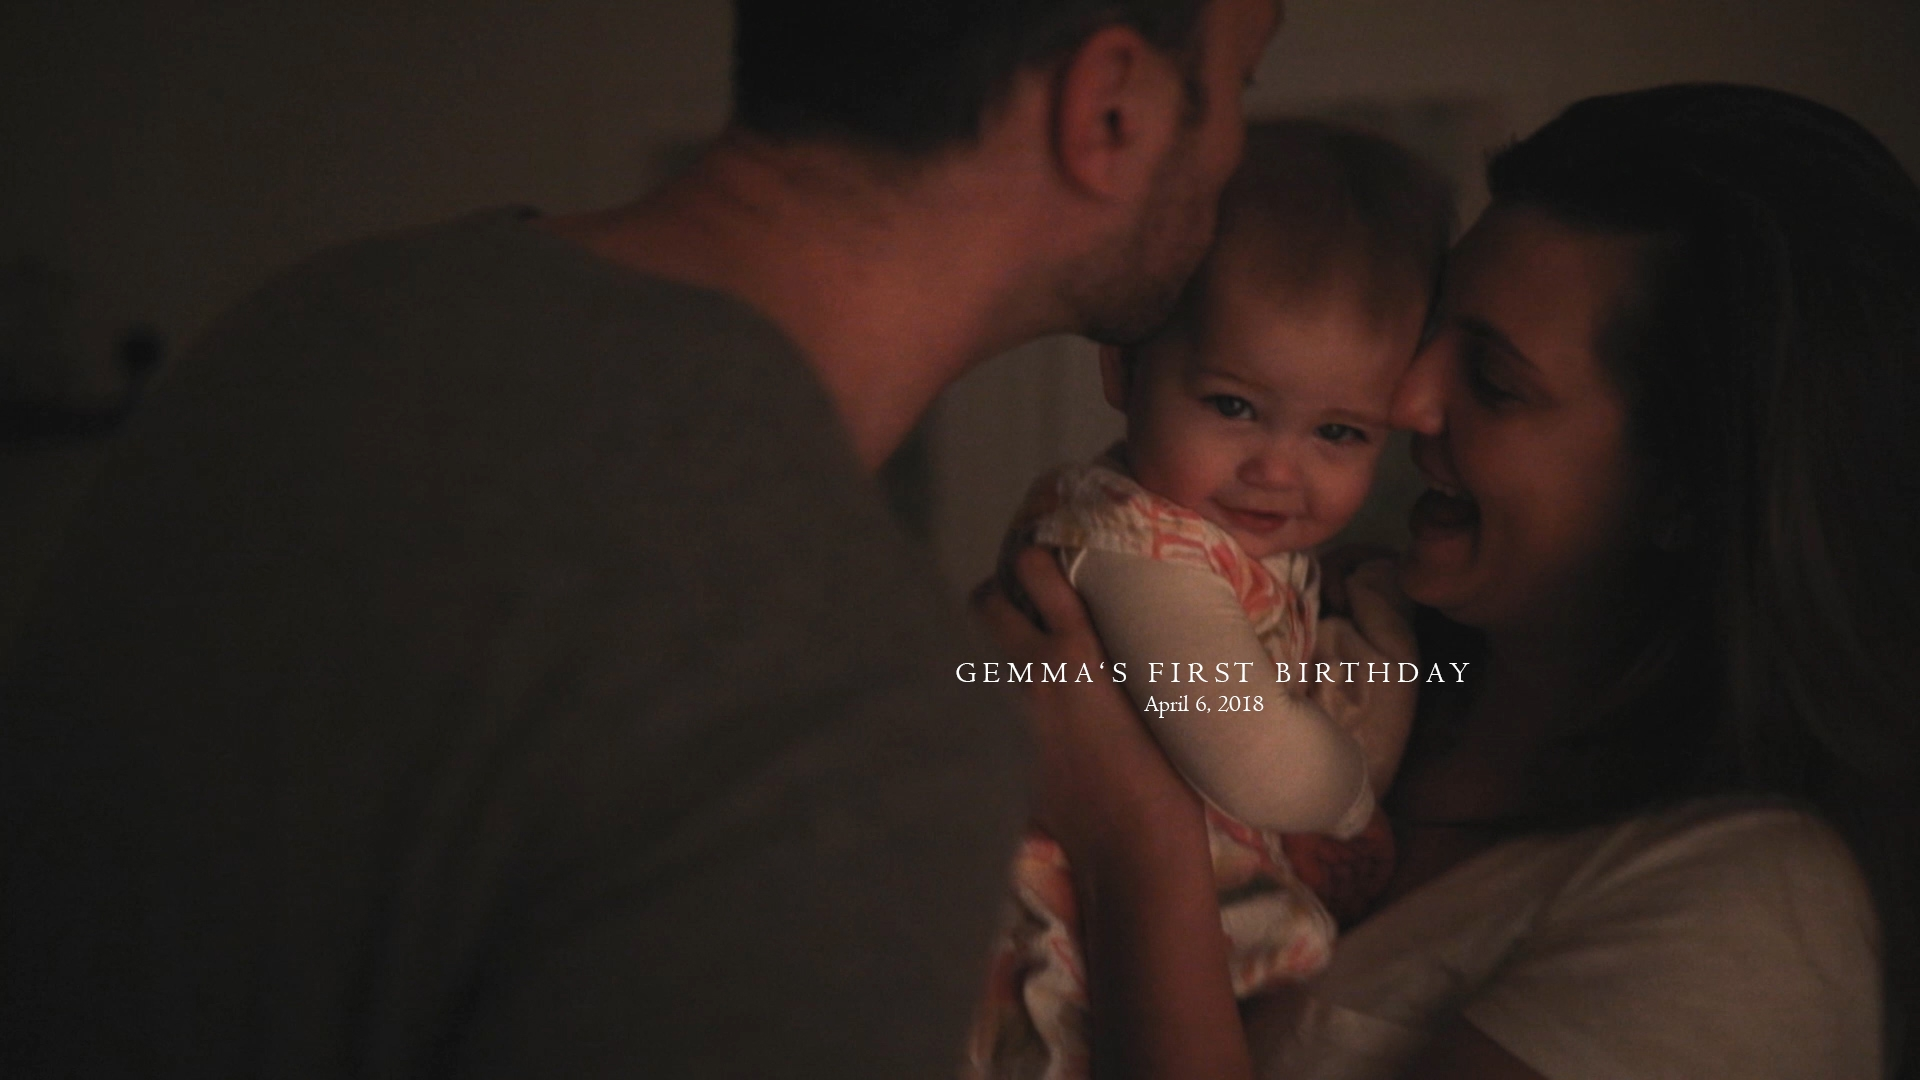 Home Movies / Atlanta, GA / Brittany Knapik Photography / Gemma's First Birthday